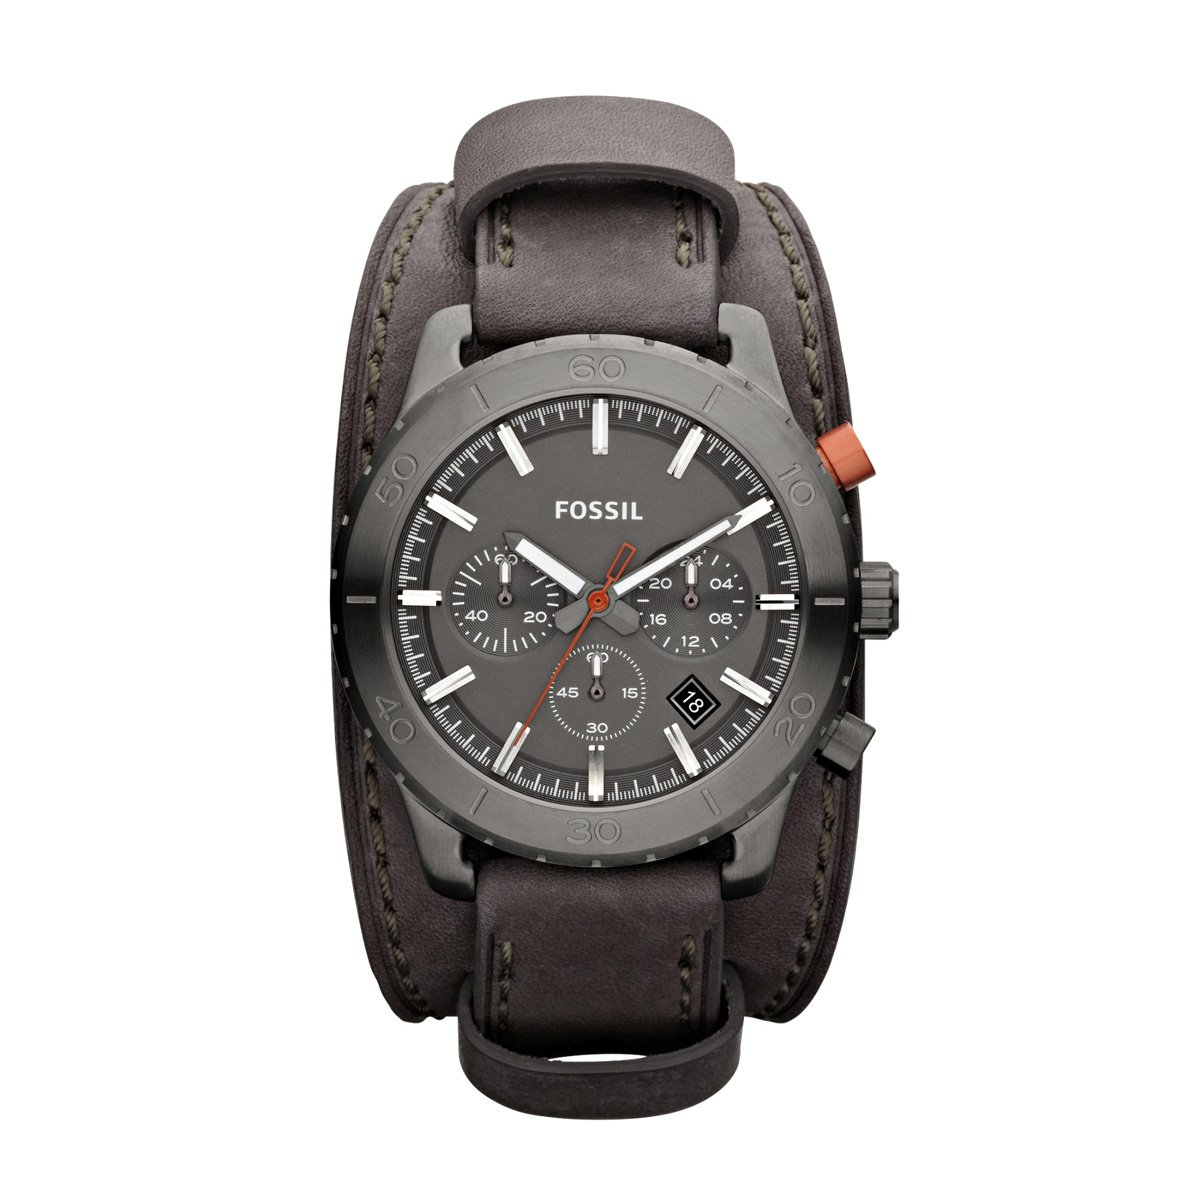 Amazon.com: FOSSIL Keaton Chronograph Leather Watch Grey: Fossil: Watches